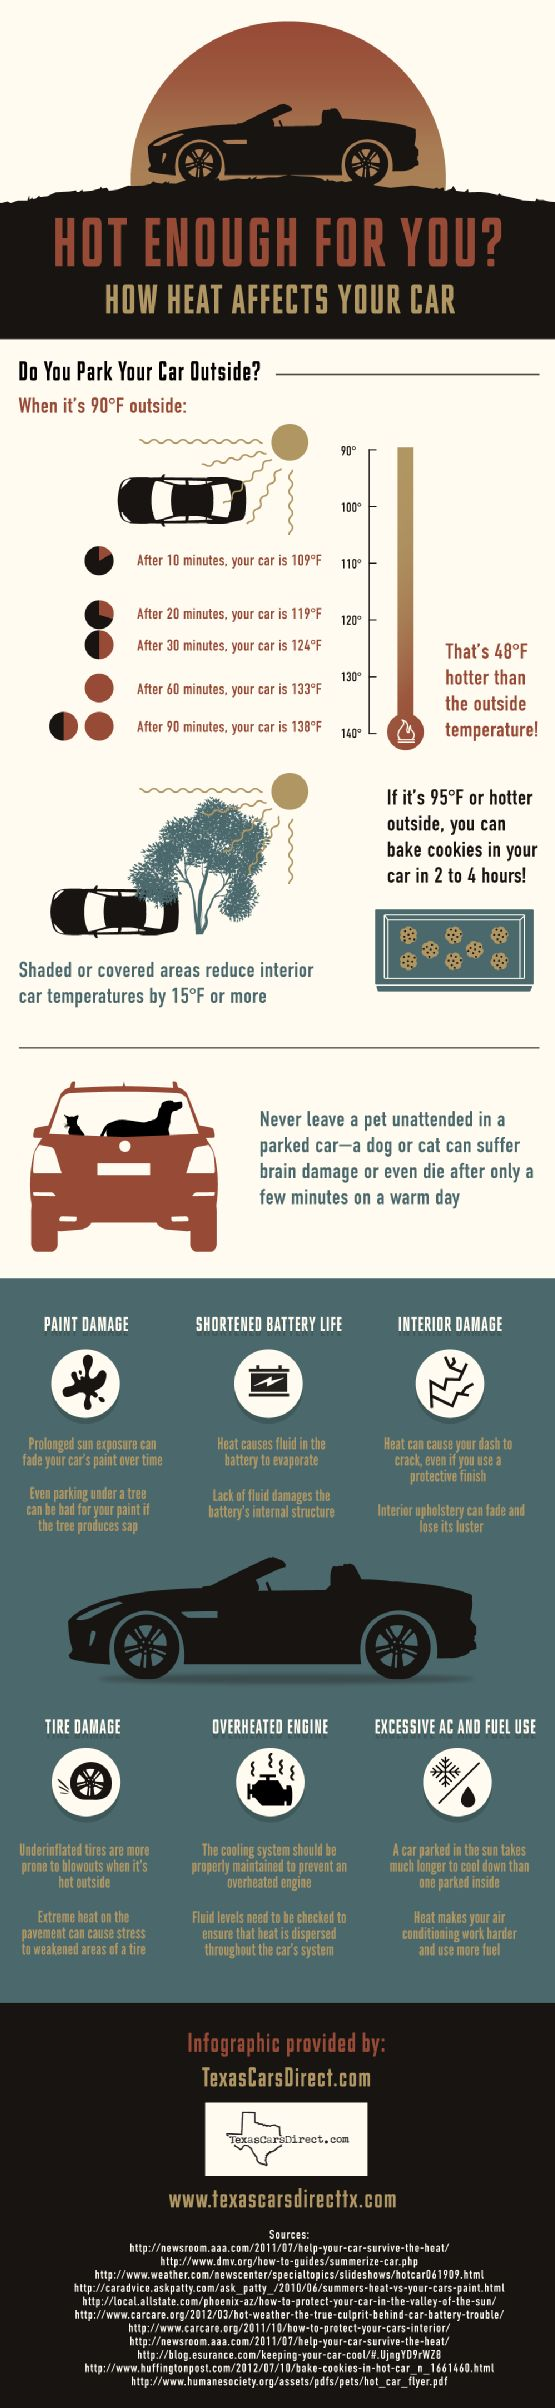 If it's 95 degrees or hotter outside, you can bake cookies in your car in two to four hours! In fact, leaving your car parked in 90 degree Texas heat means that your car will be 138 degrees after just 90 minutes. Click on this infographic to learn more.